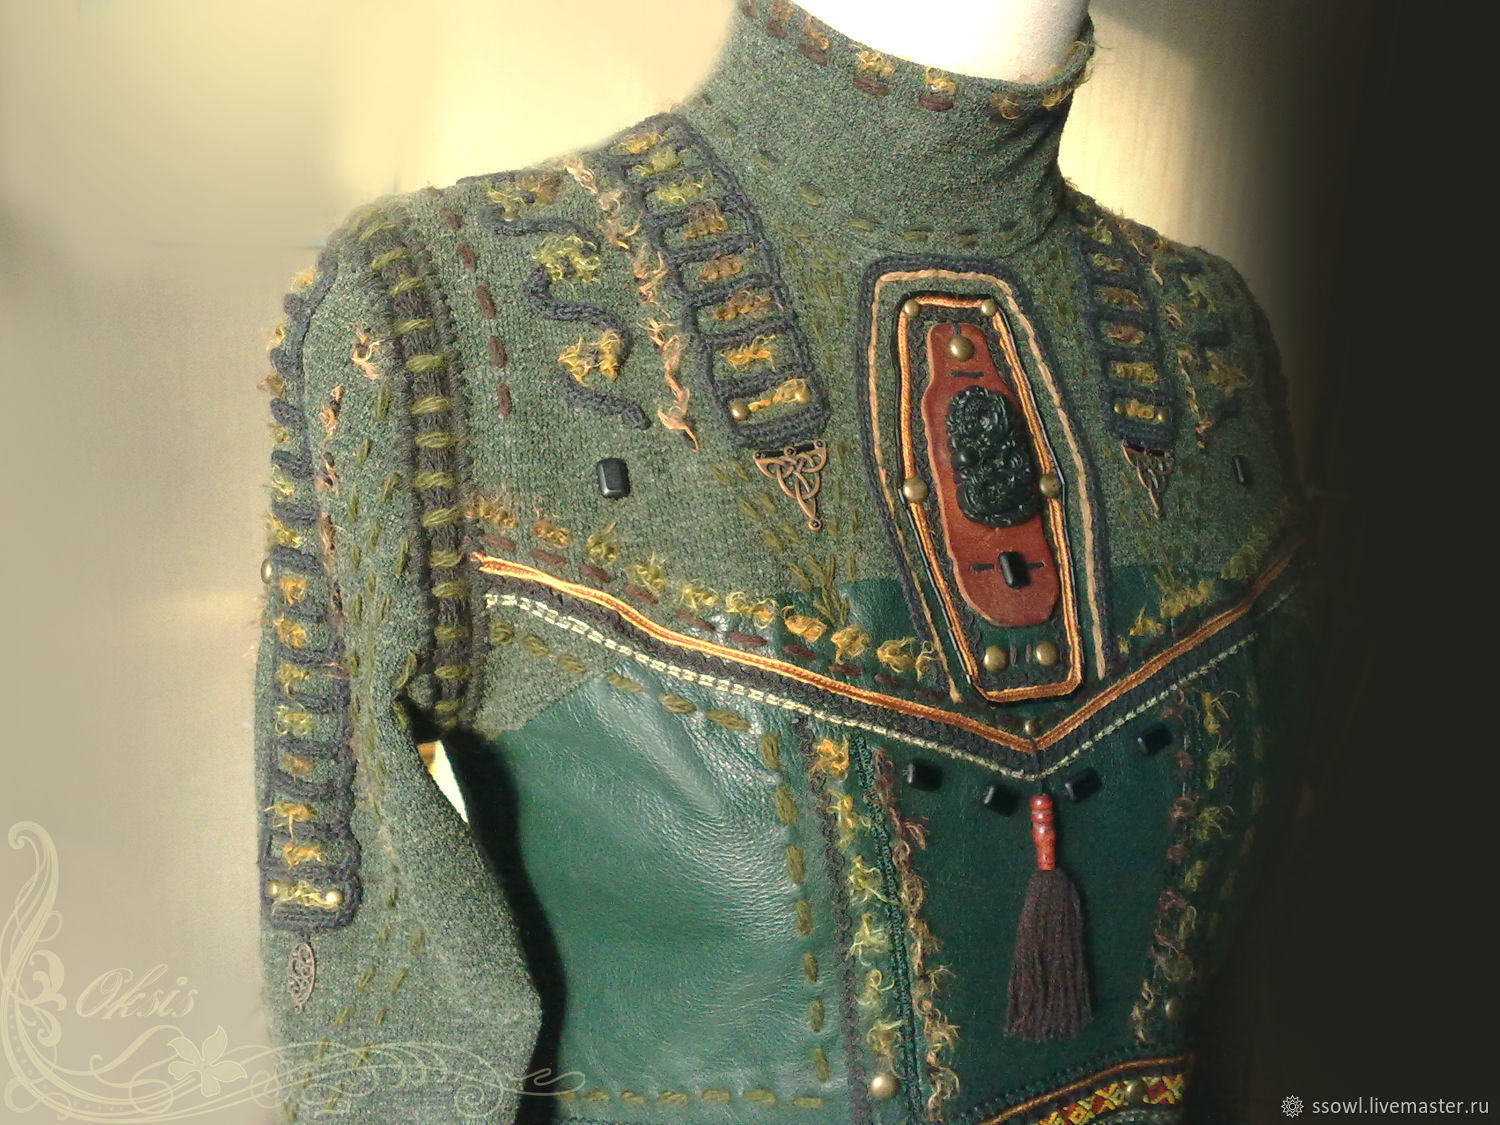 Blouse ethno style khaki knitwear cotton hand embroidery decor yarn wool, fluffy thread carved jade beads Leather insert Green sweater ethnics, riveting, braid. Fitted Beautiful For every day